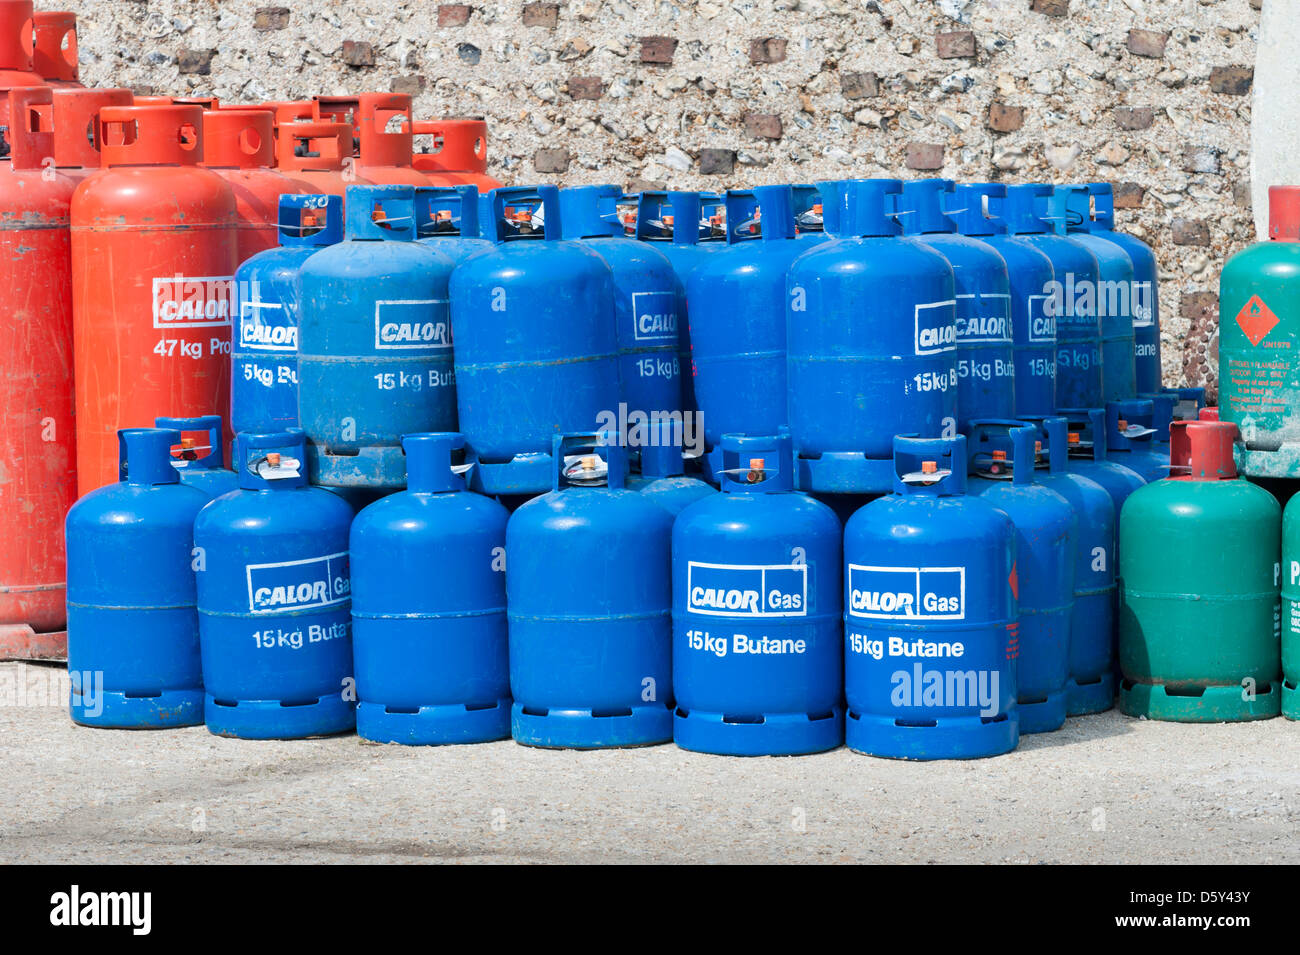 Stacks of red green and blue Calor Gas butane and Propane cylinders - Stock Image